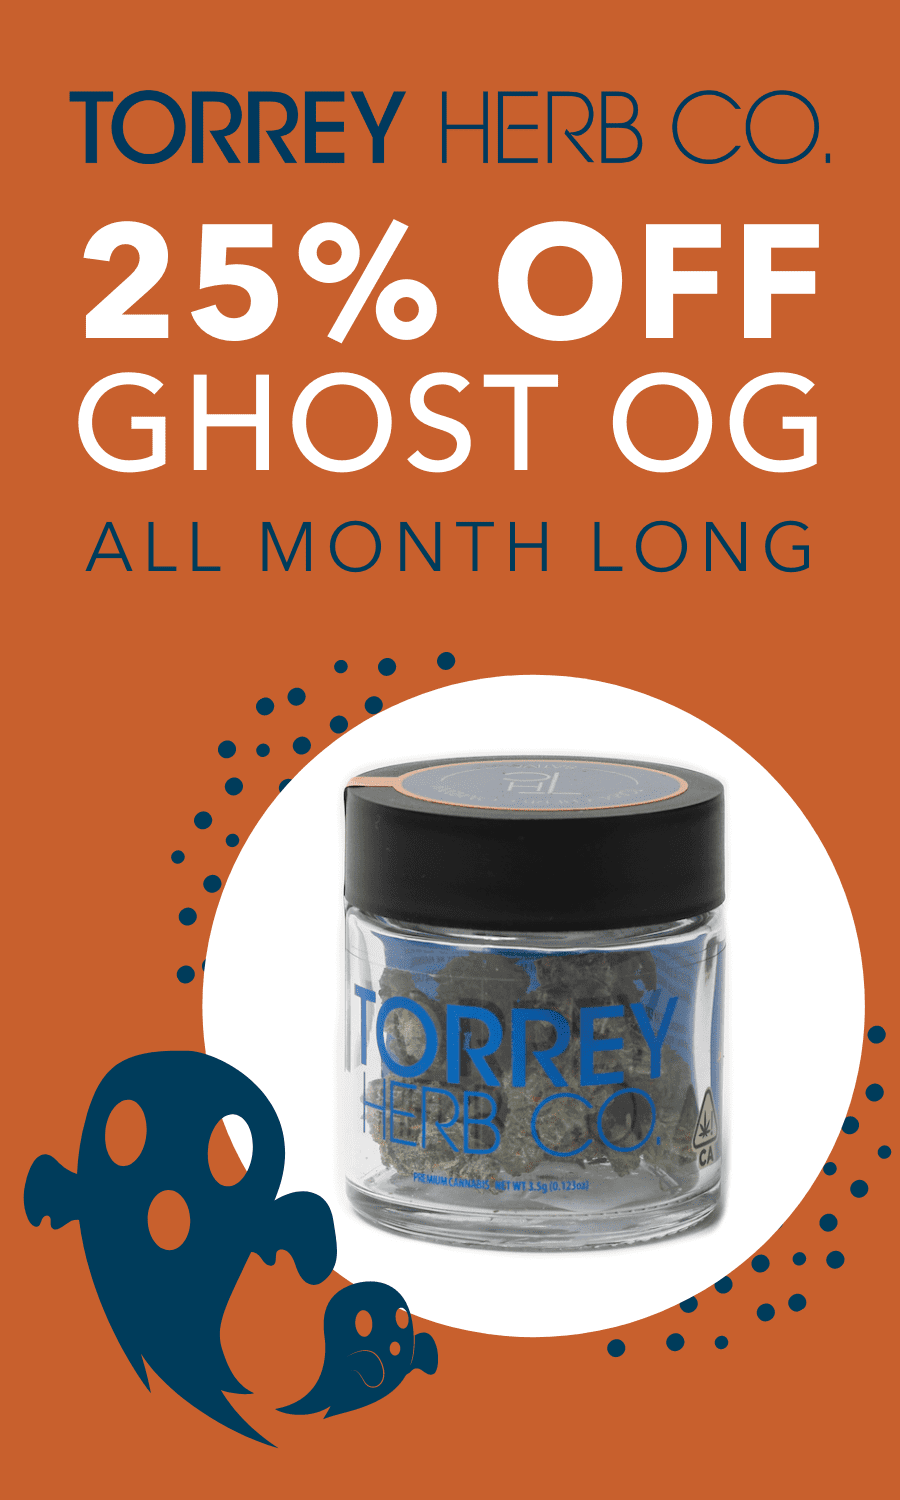 Take 25% off Ghost OG all month long